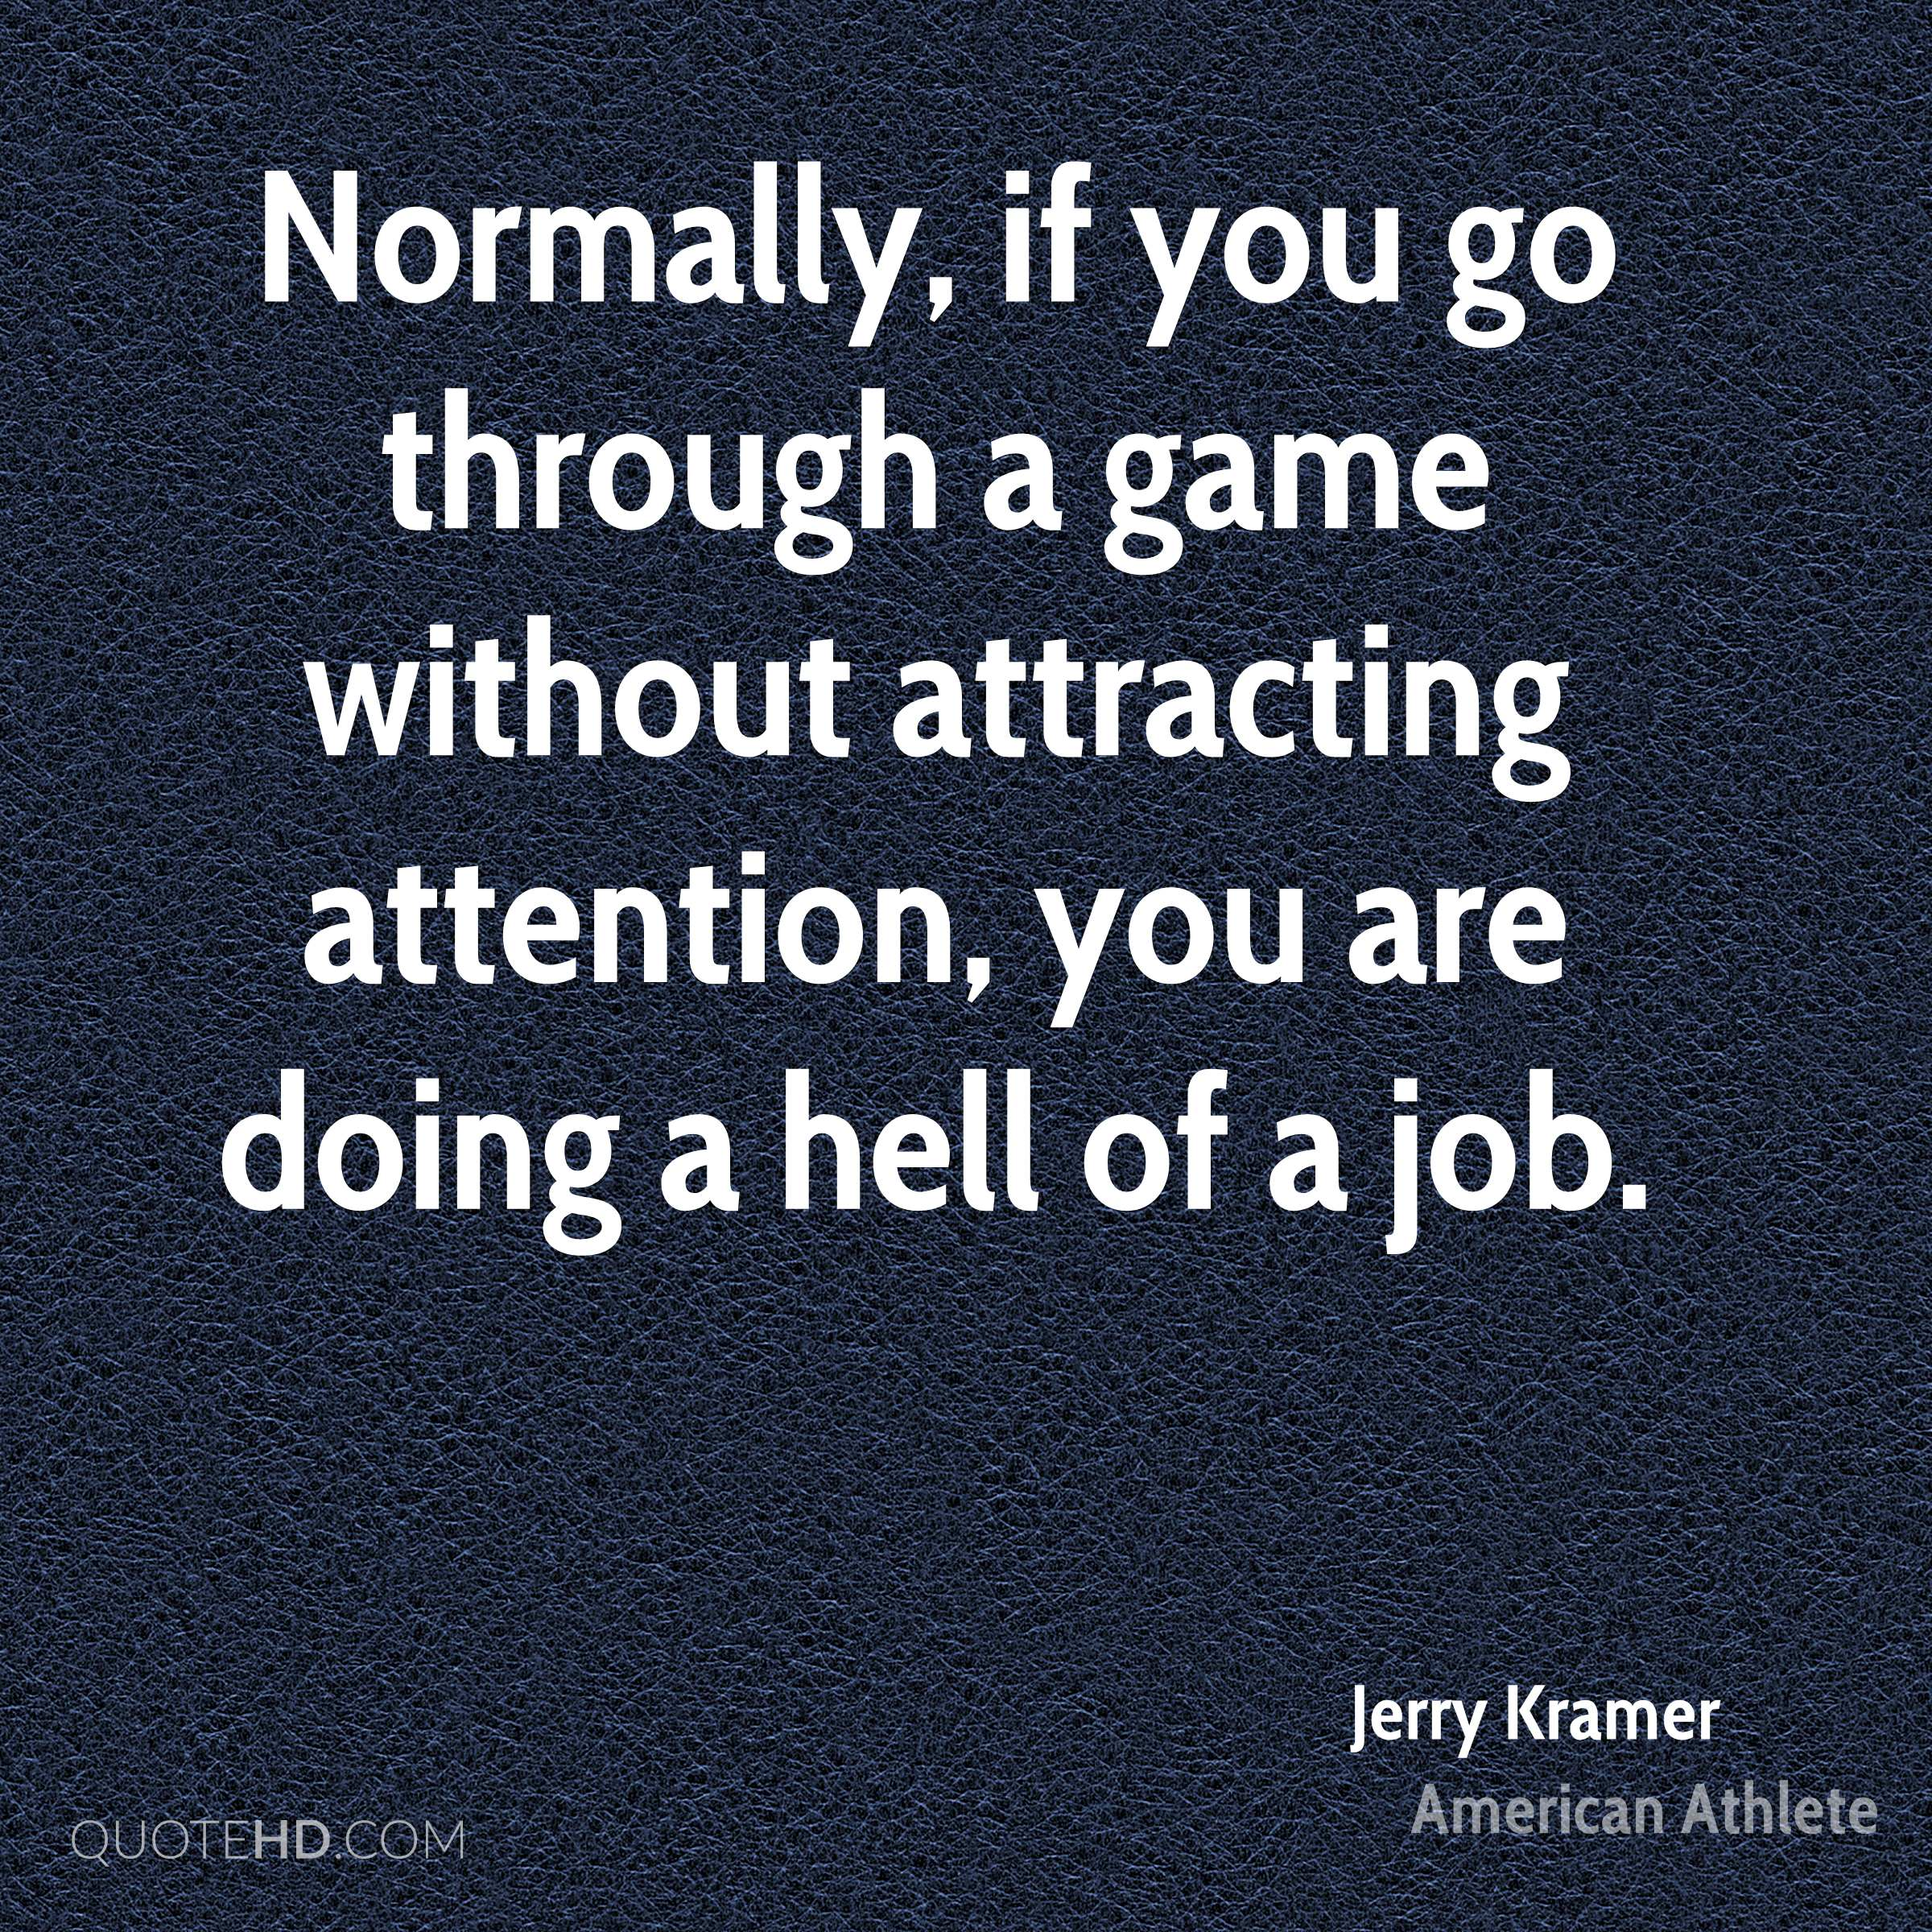 Normally, if you go through a game without attracting attention, you are doing a hell of a job.